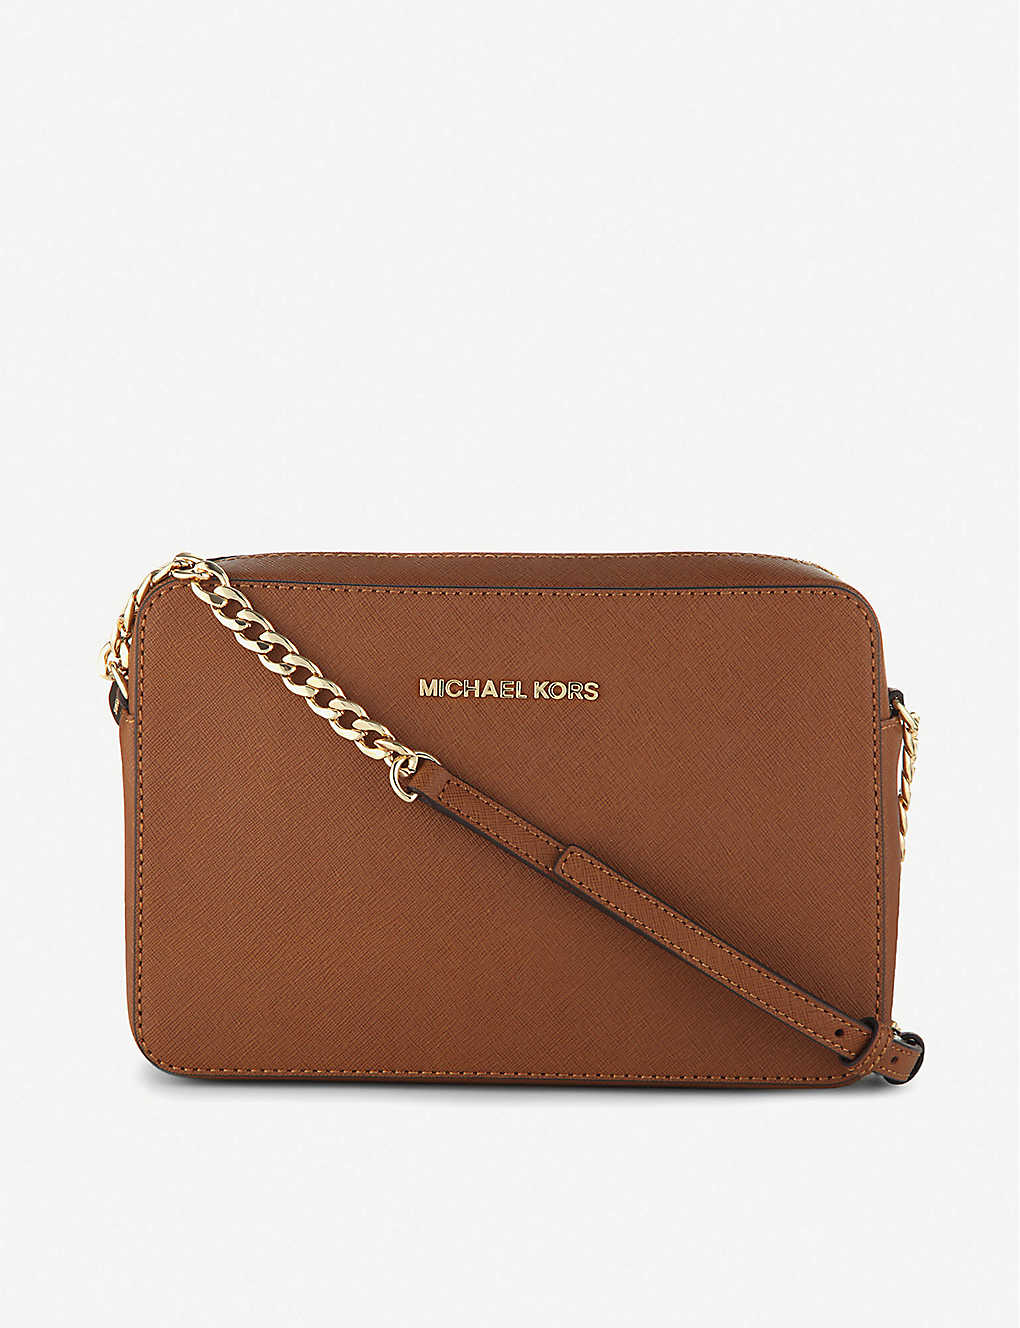 2b343dd38b6e MICHAEL MICHAEL KORS - Saffiano leather cross-body bag | Selfridges.com